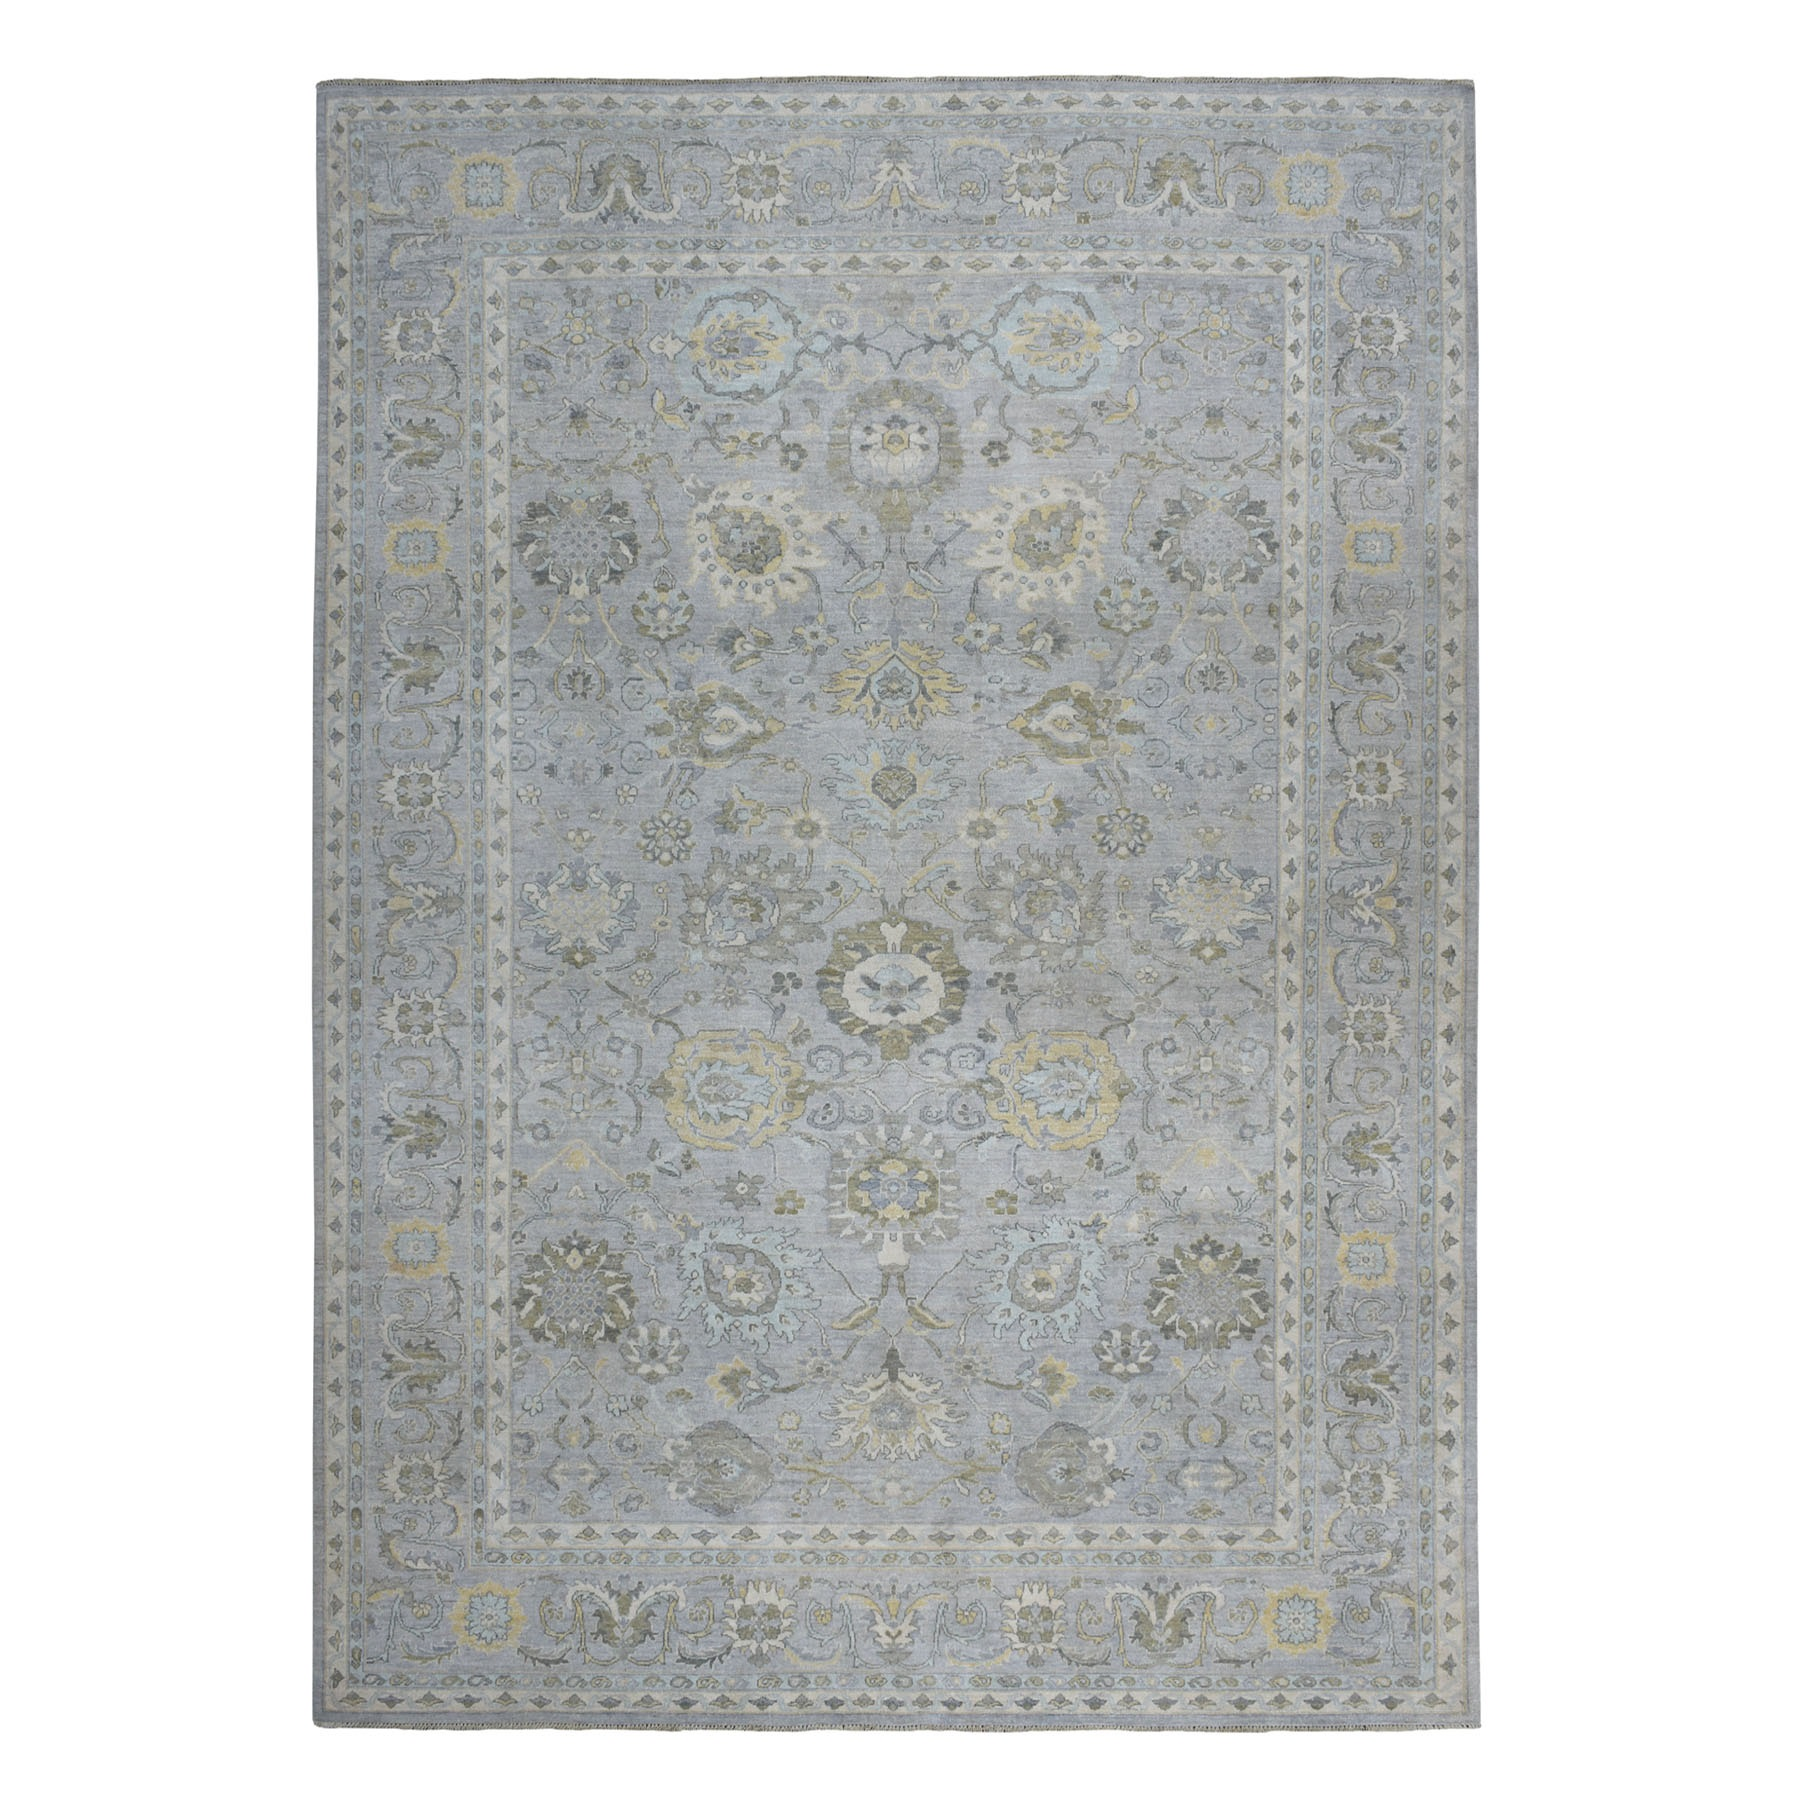 "11'10""x14'10"" Oversized White Wash Peshawar 100% Wool Hand Knotted Oriental Rug"